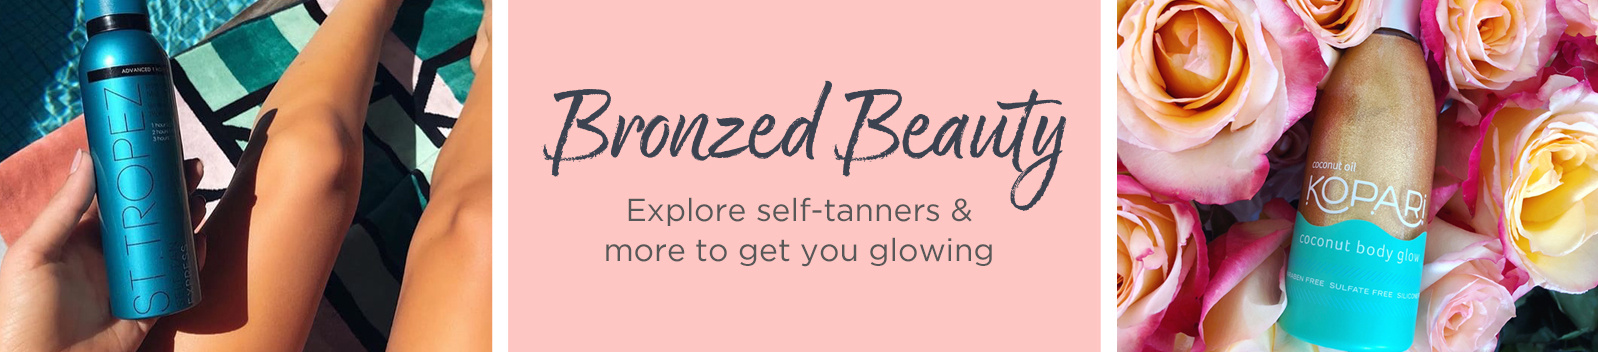 Bronzed Beauty. Explore self tanners & more to get you glowing